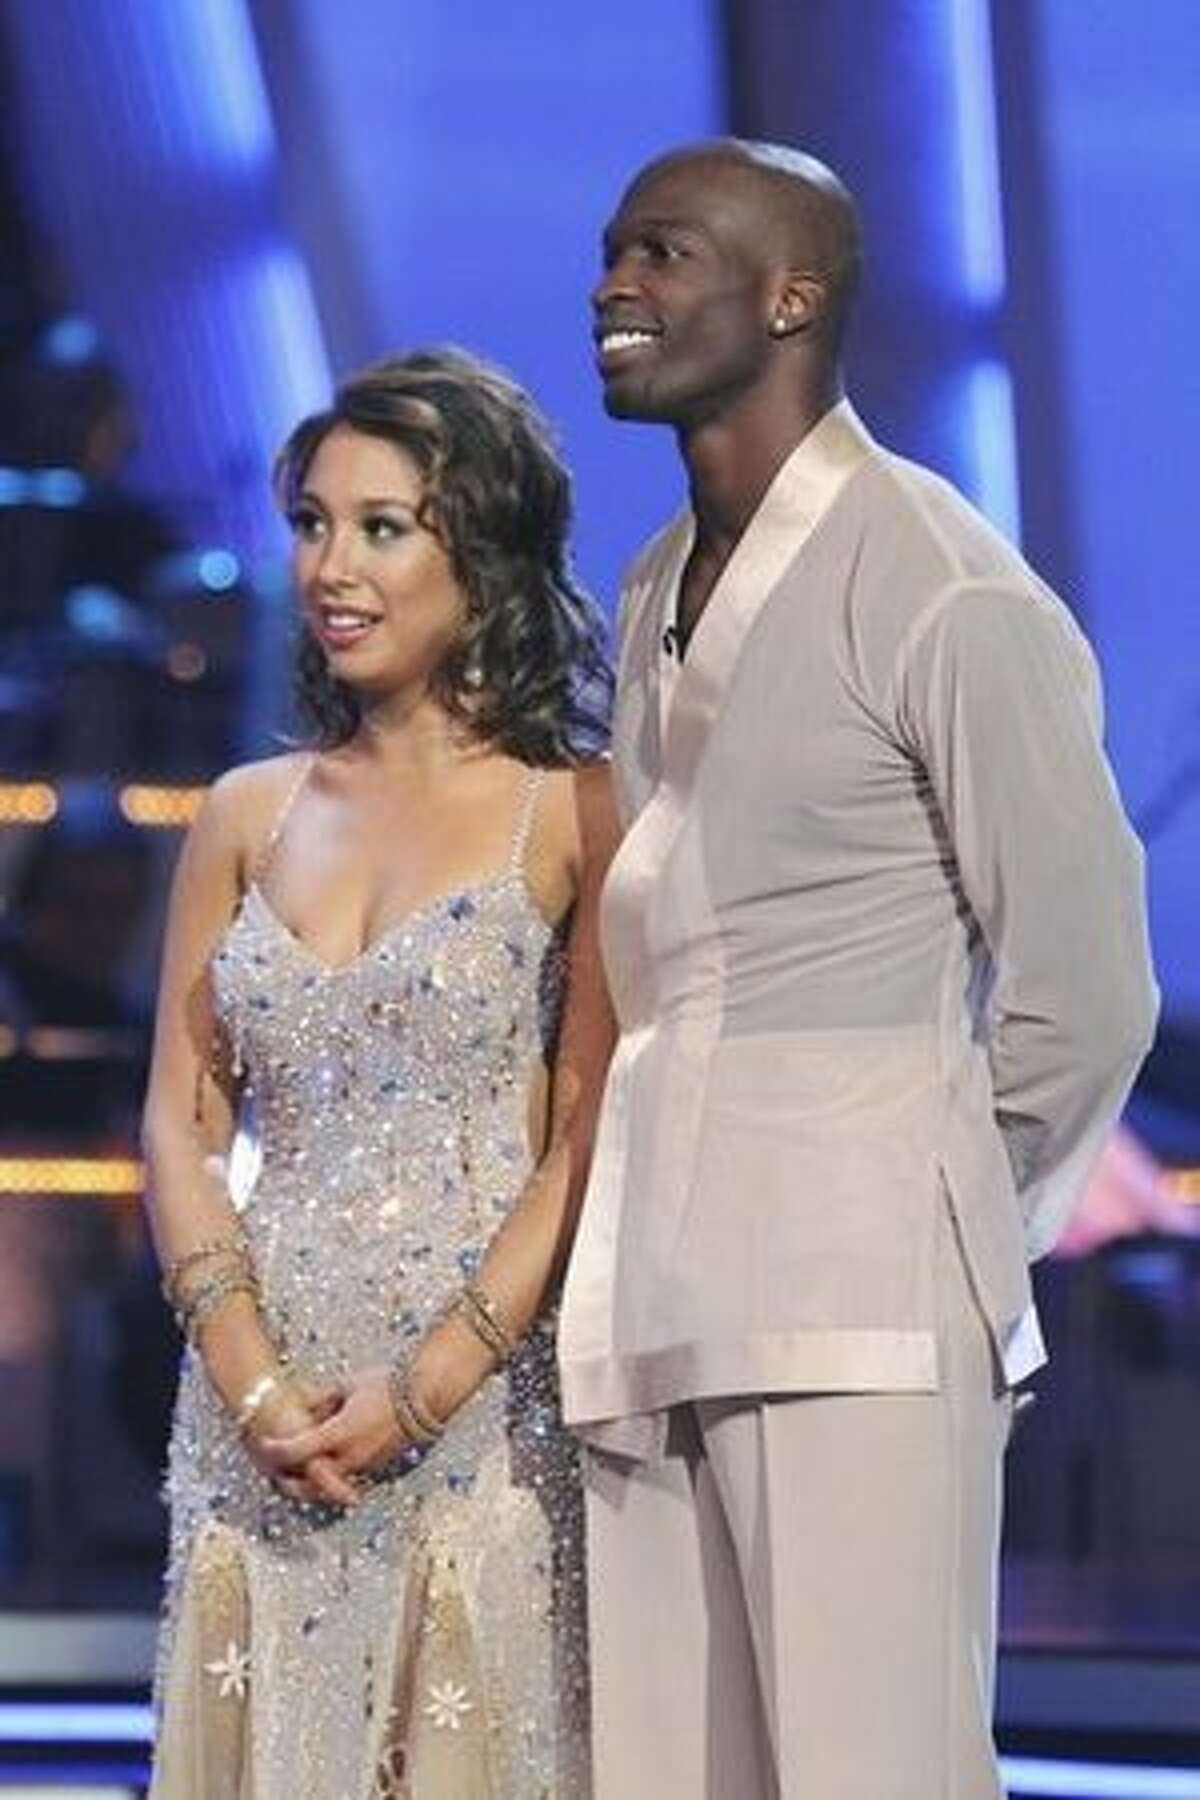 Chad and Cheryl get a 27.